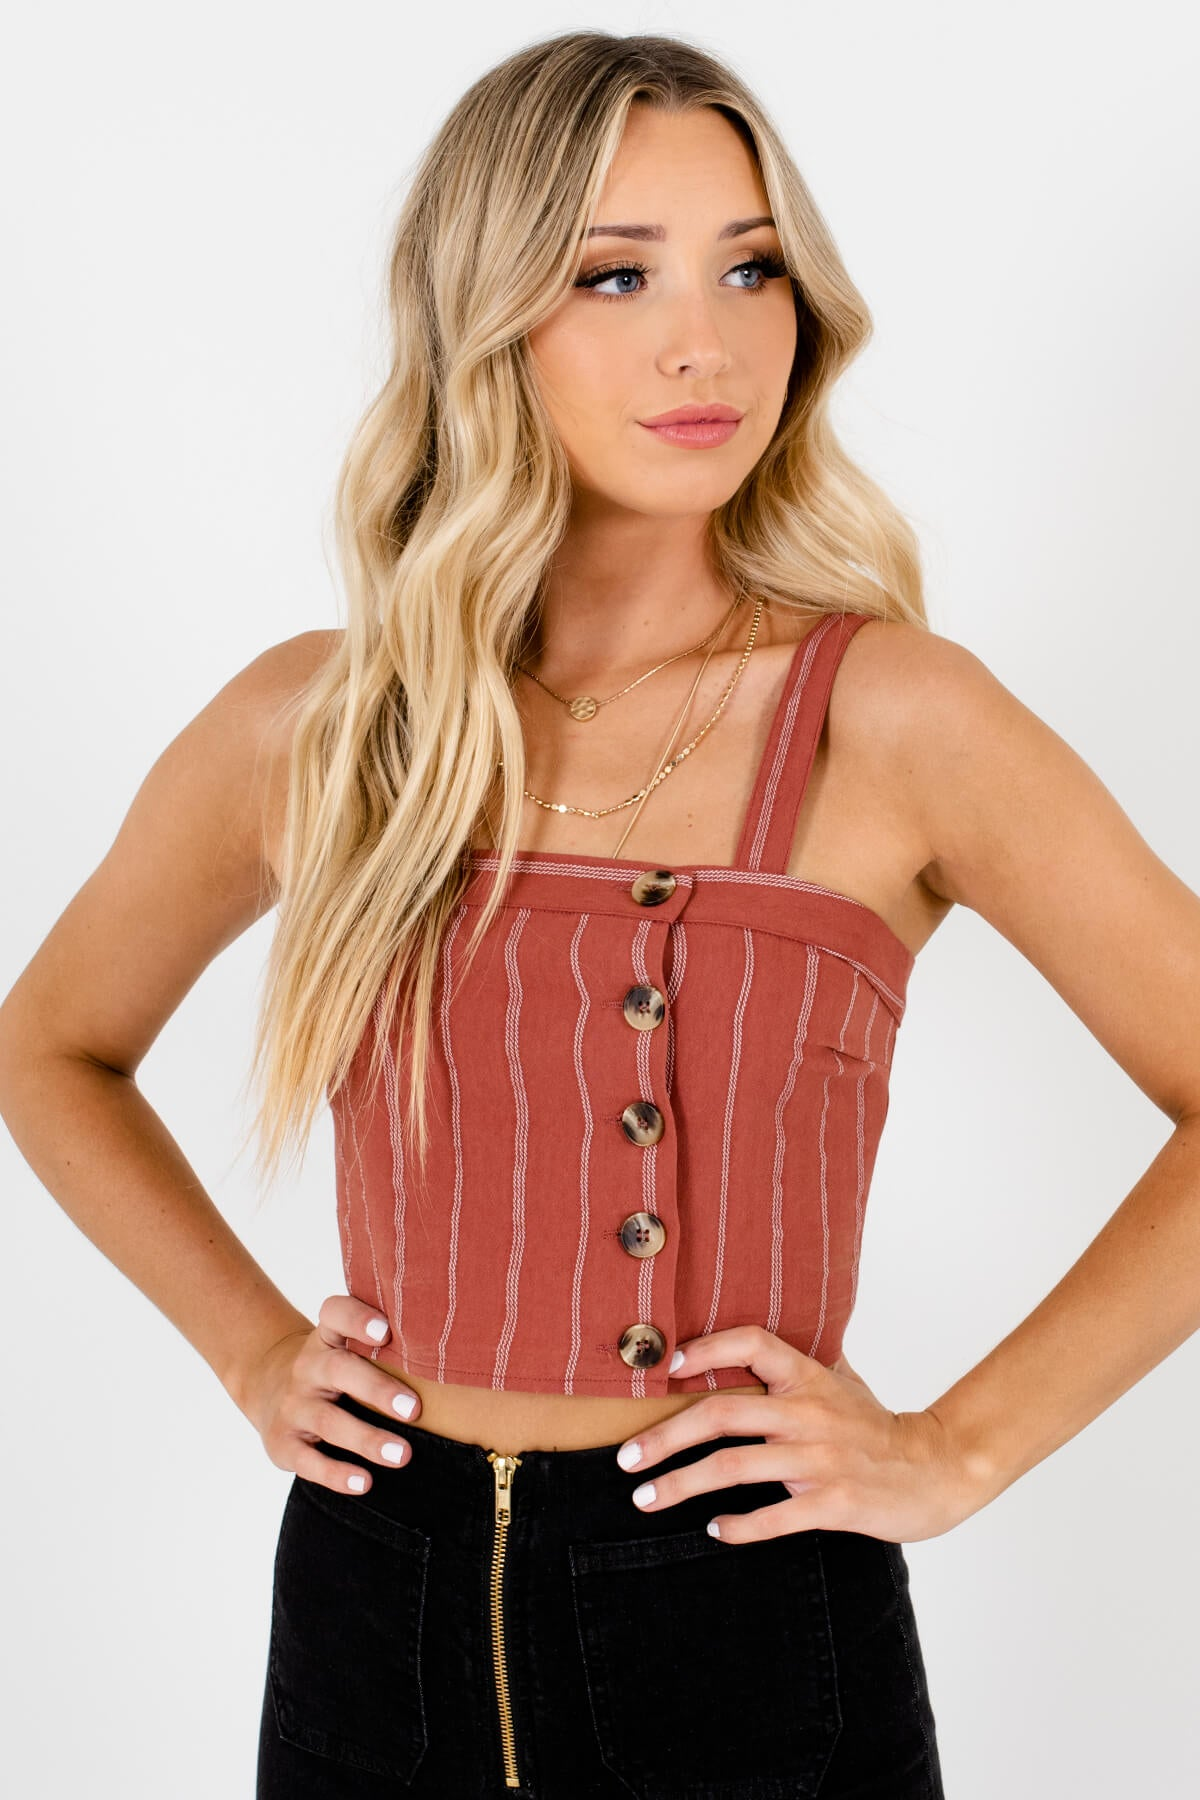 Rust Orange and White Striped Boutique Tank Tops for Women